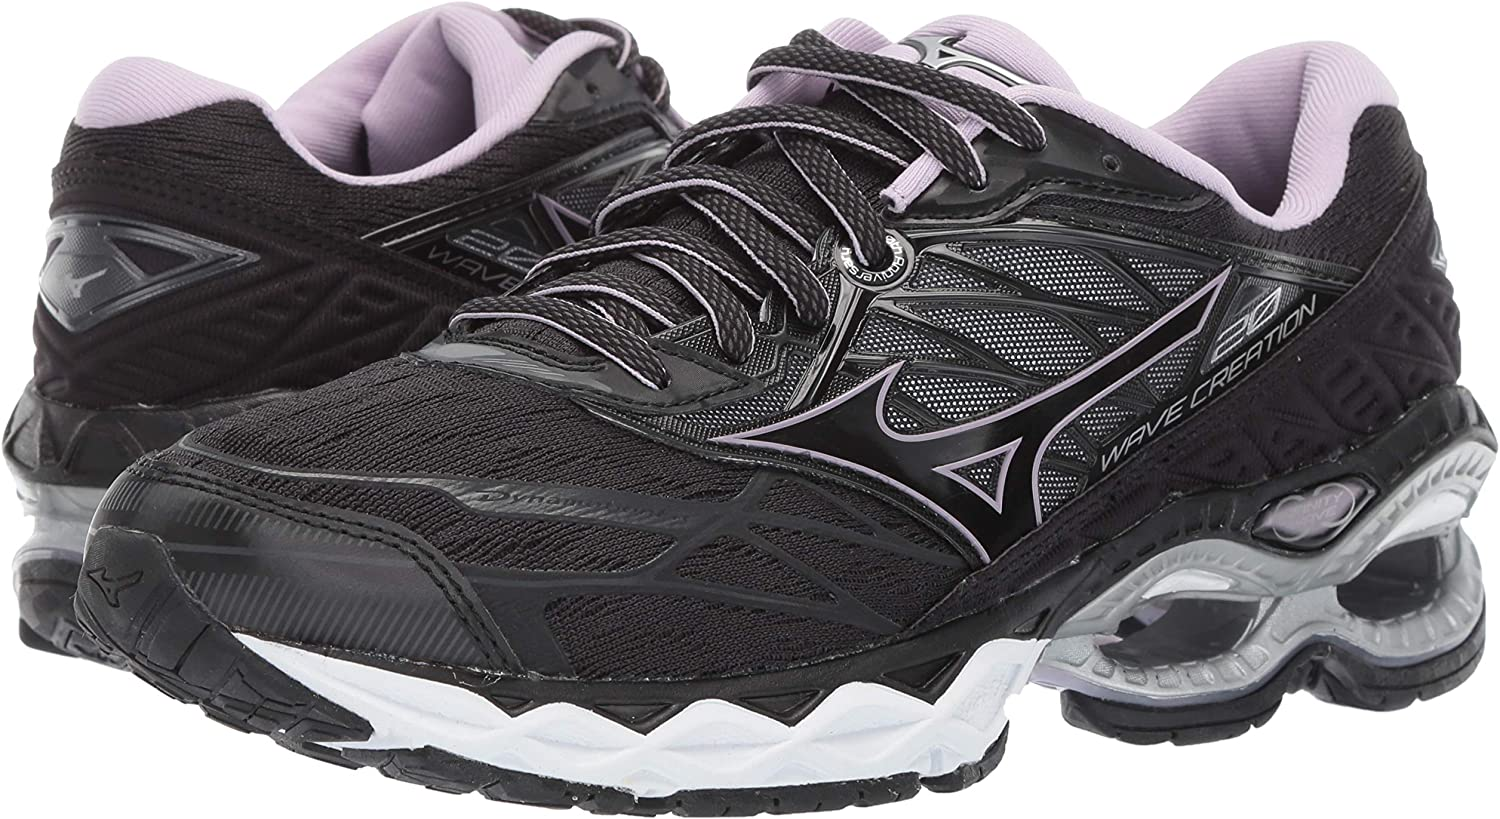 best mizuno running shoes for flat feet nz size chart